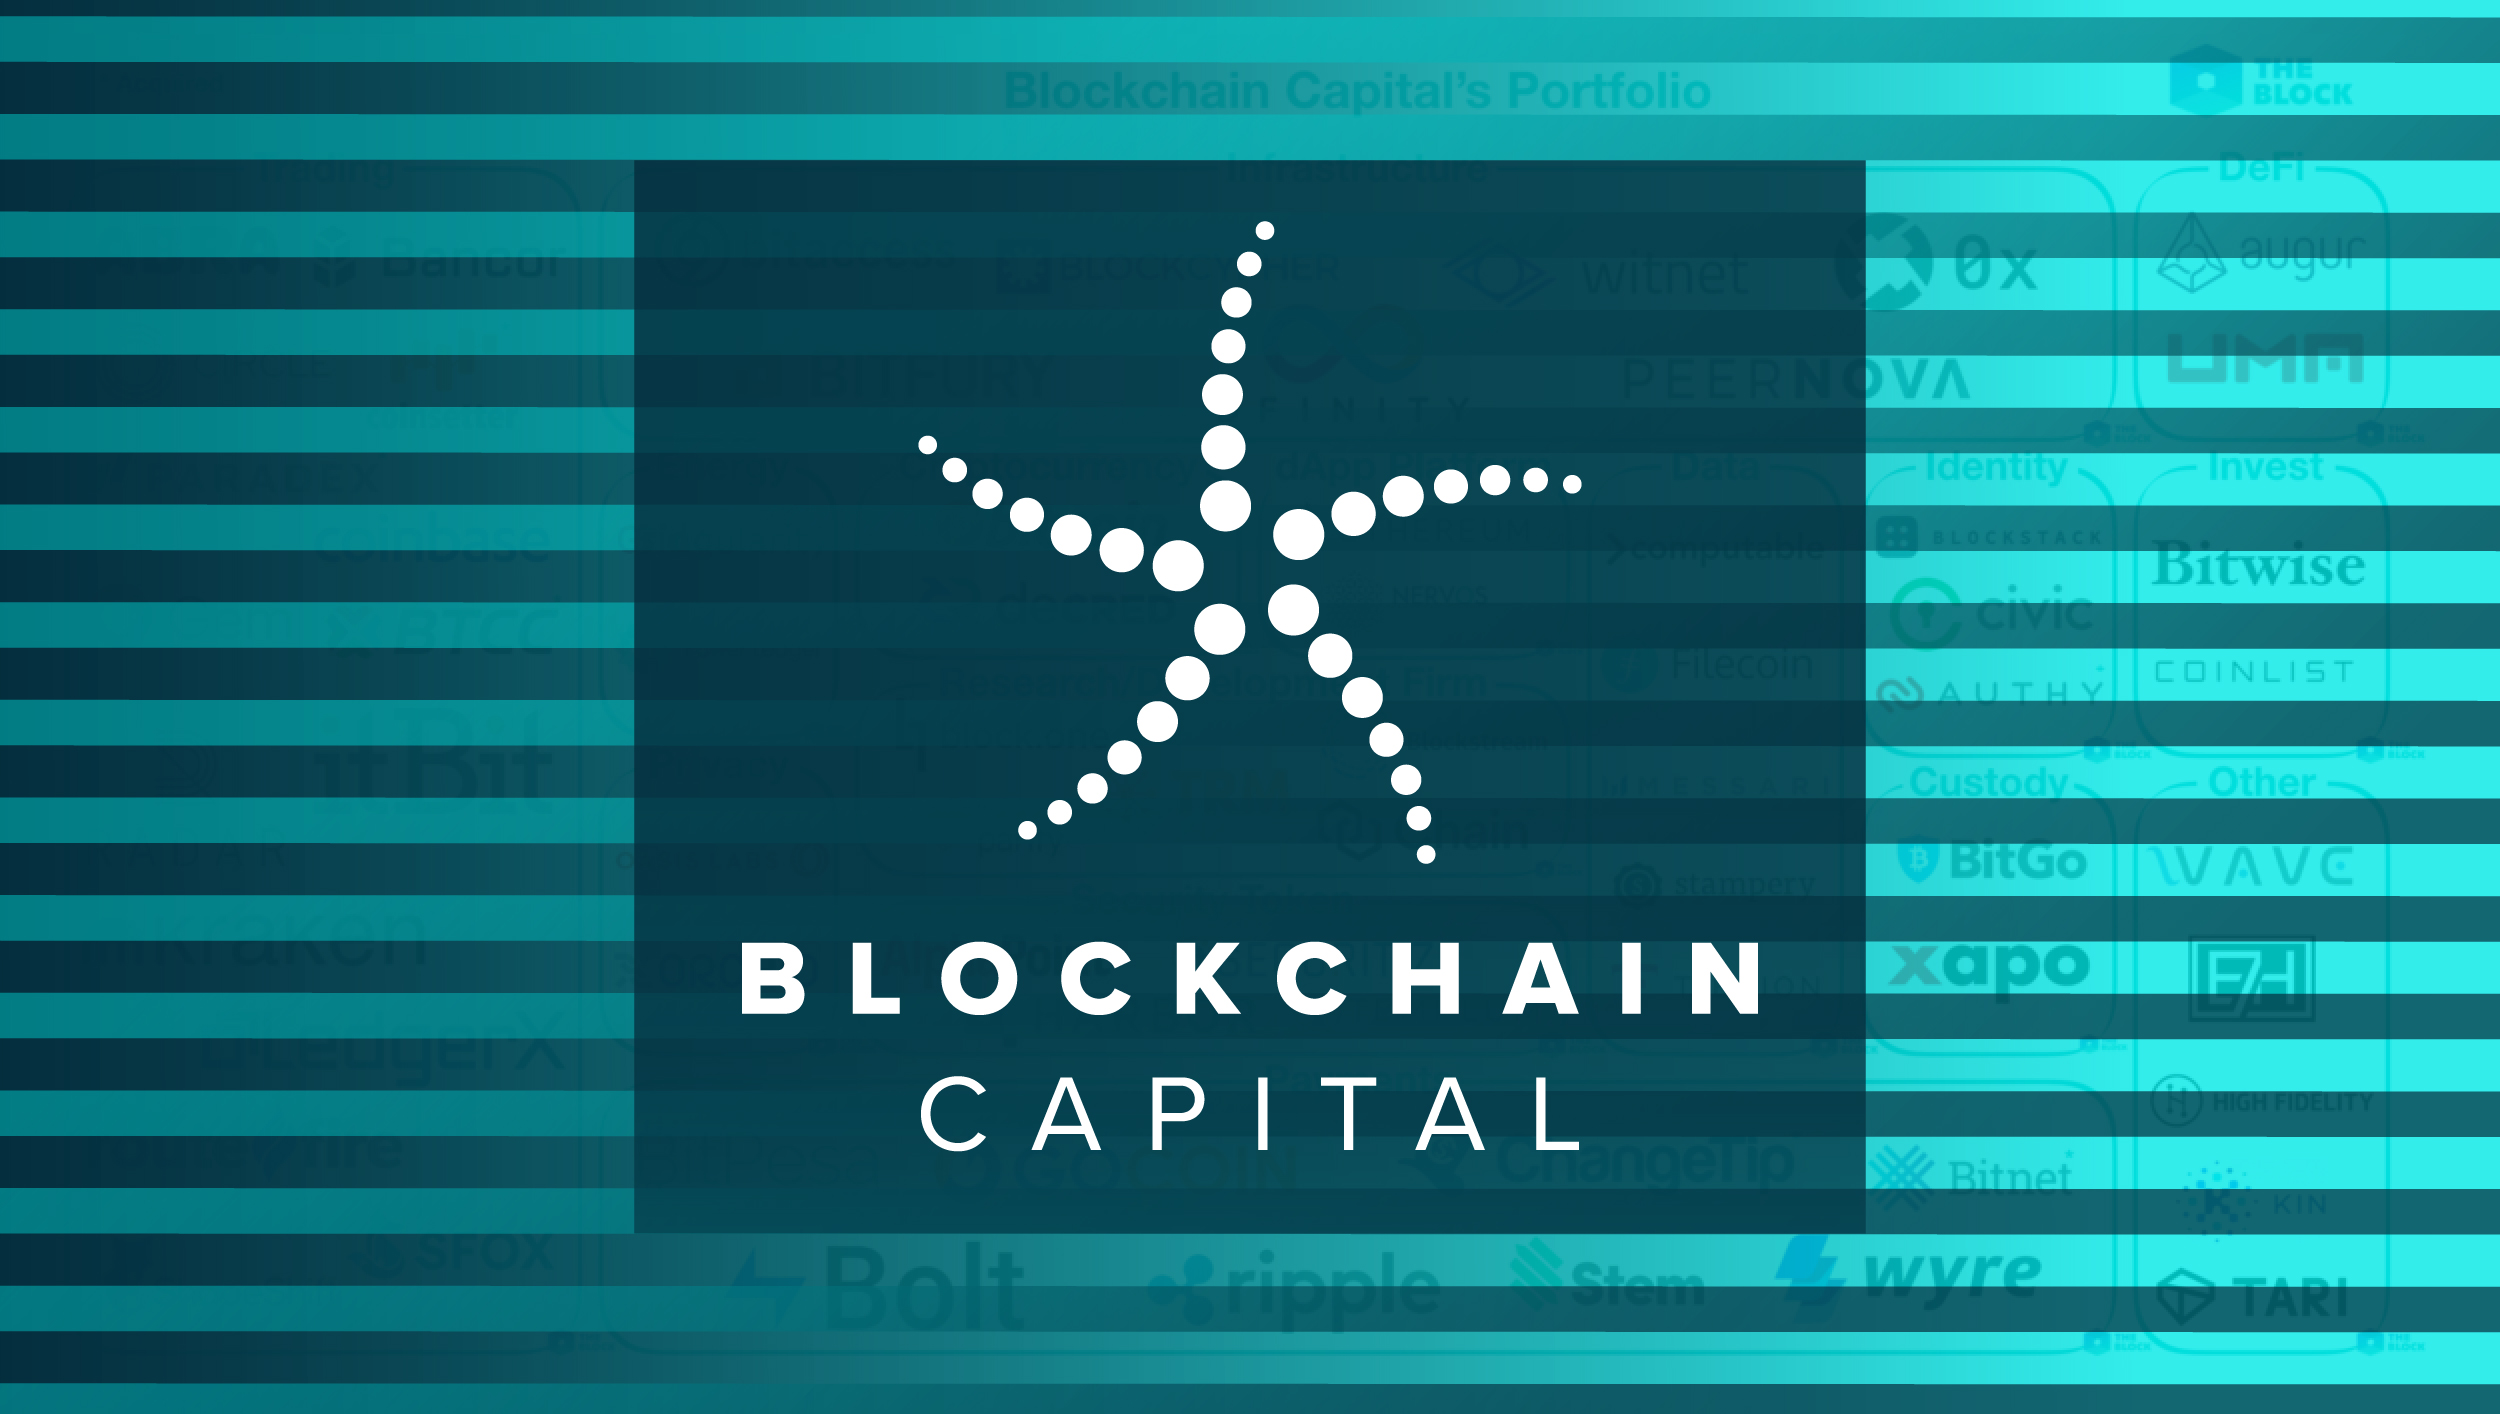 $300 million: Blockchain Capital raises new fund with backing from PayPal and Visa